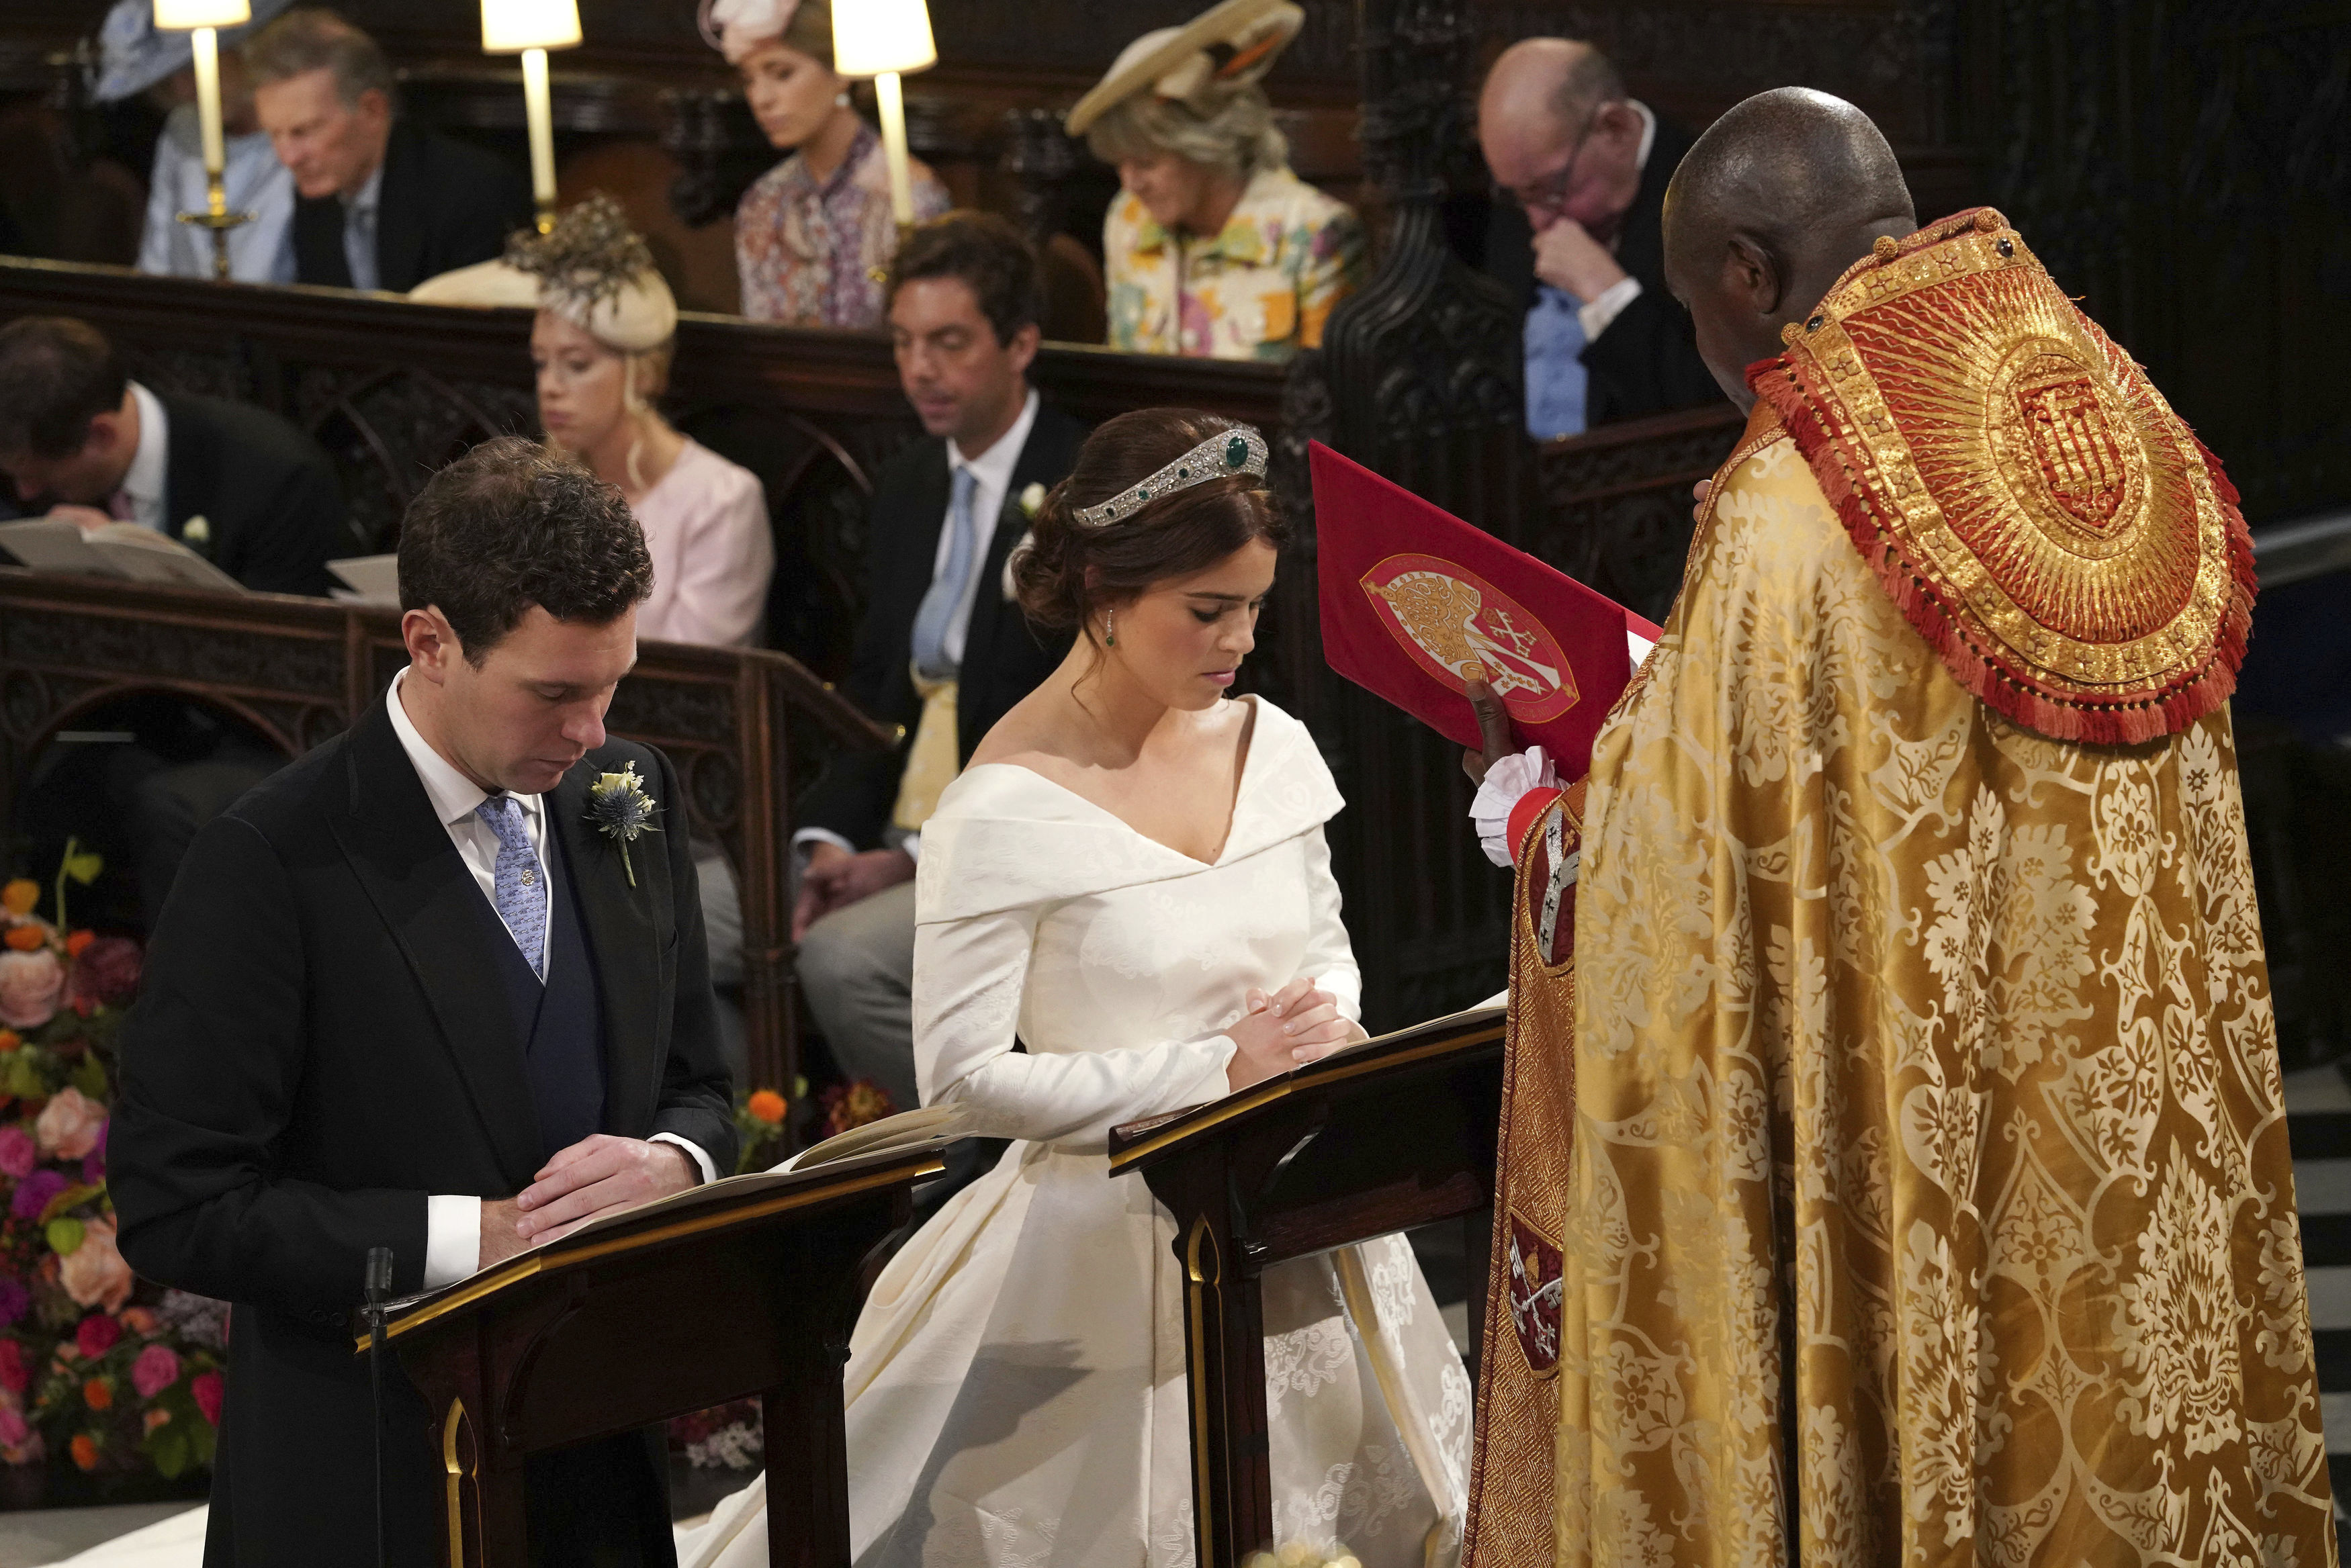 <div class='meta'><div class='origin-logo' data-origin='none'></div><span class='caption-text' data-credit='Jonathan Brady, Pool via AP'>The Archbishop of York Dr John Sentamu during the wedding ceremony between Princess Eugenie of York and Jack Brooksbank in St George's Chapel, Windsor Castle, near London, England.</span></div>